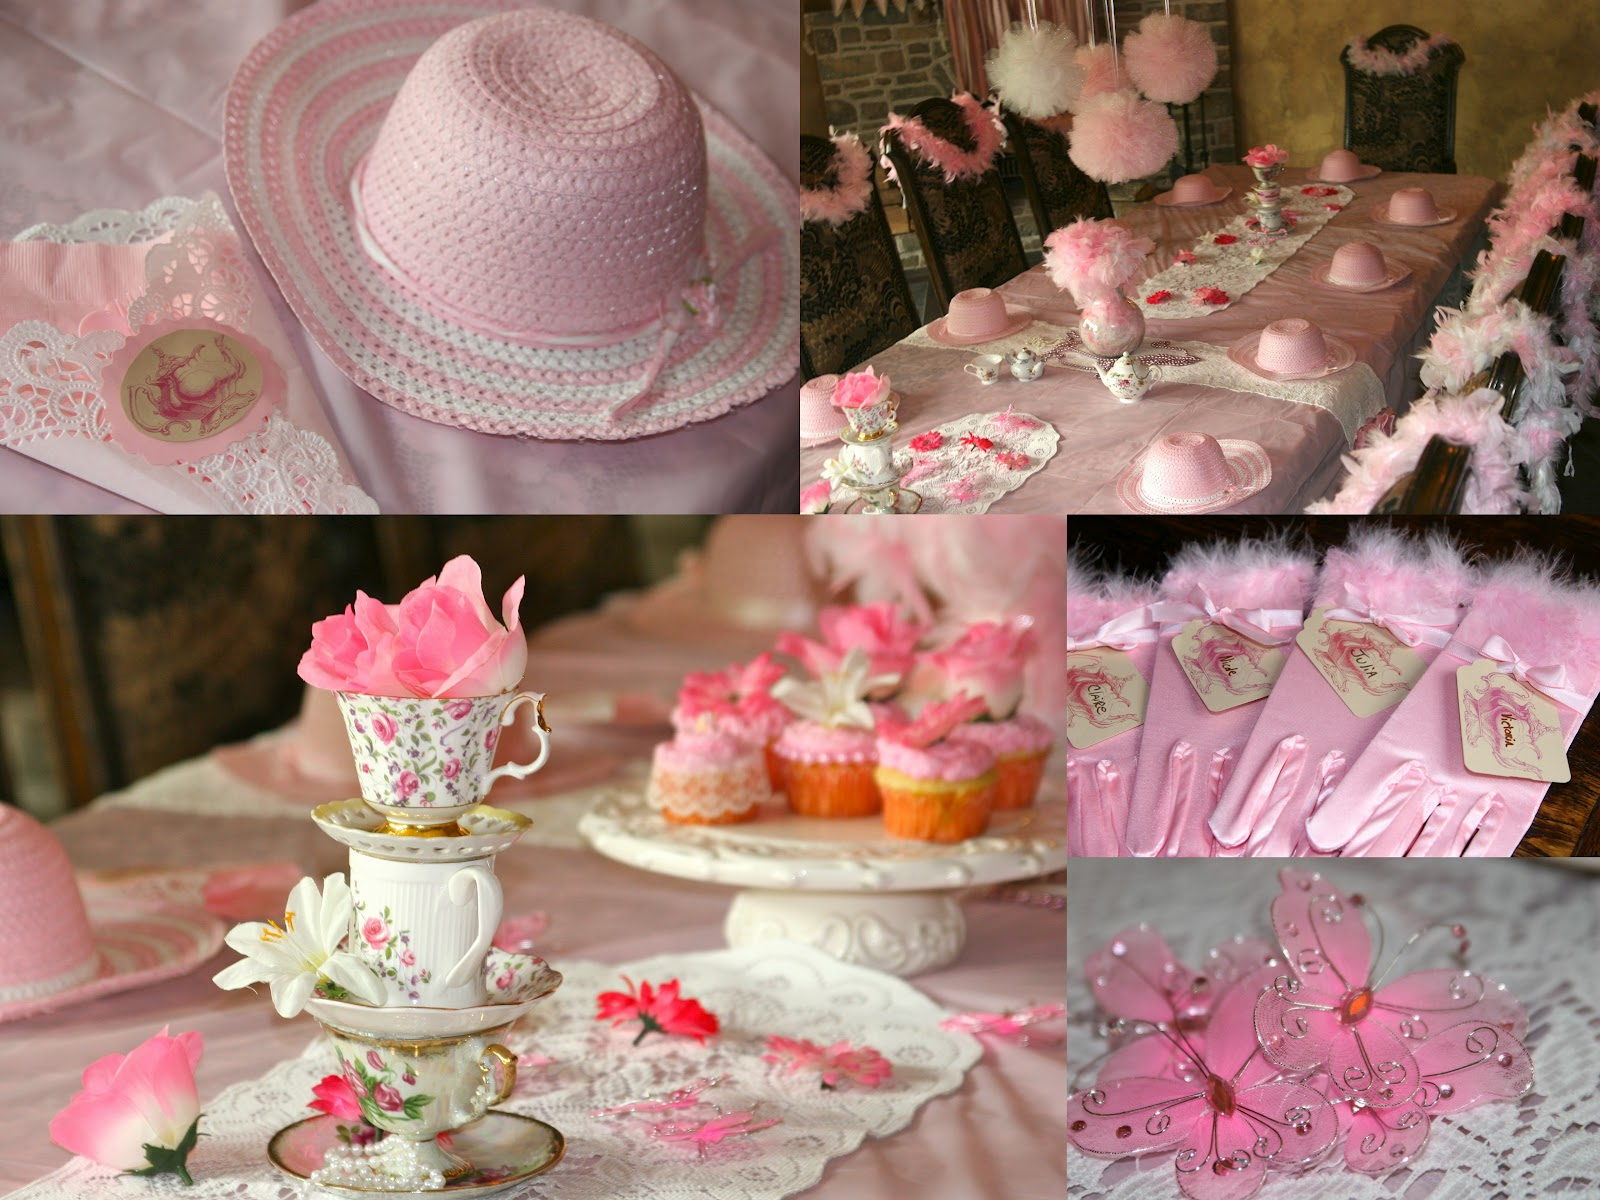 Pretti mini blog the classic tea party Party table setting decoration